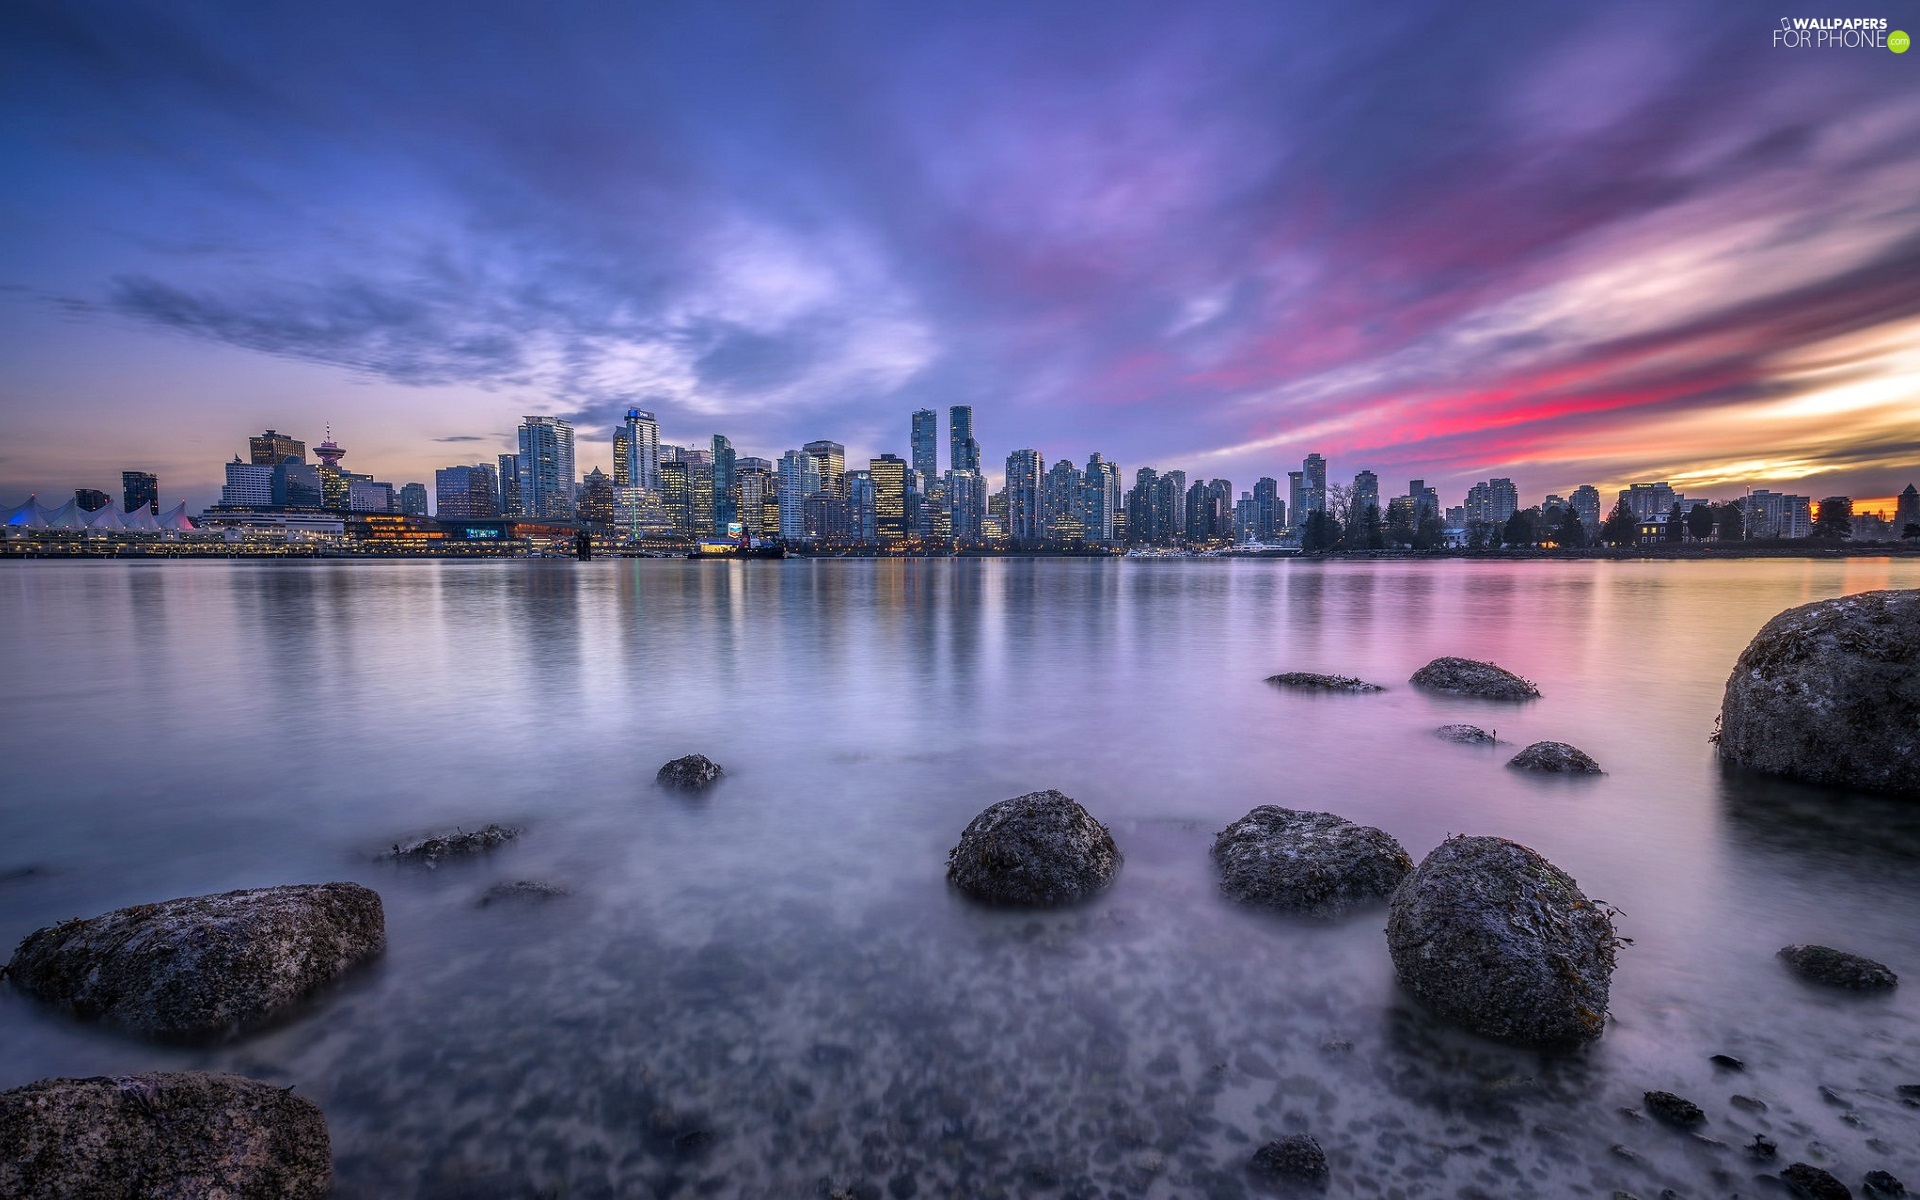 skyscrapers, Fraser River, Province of British Columbia, Stones, Vancouver, Great Sunsets, Canada